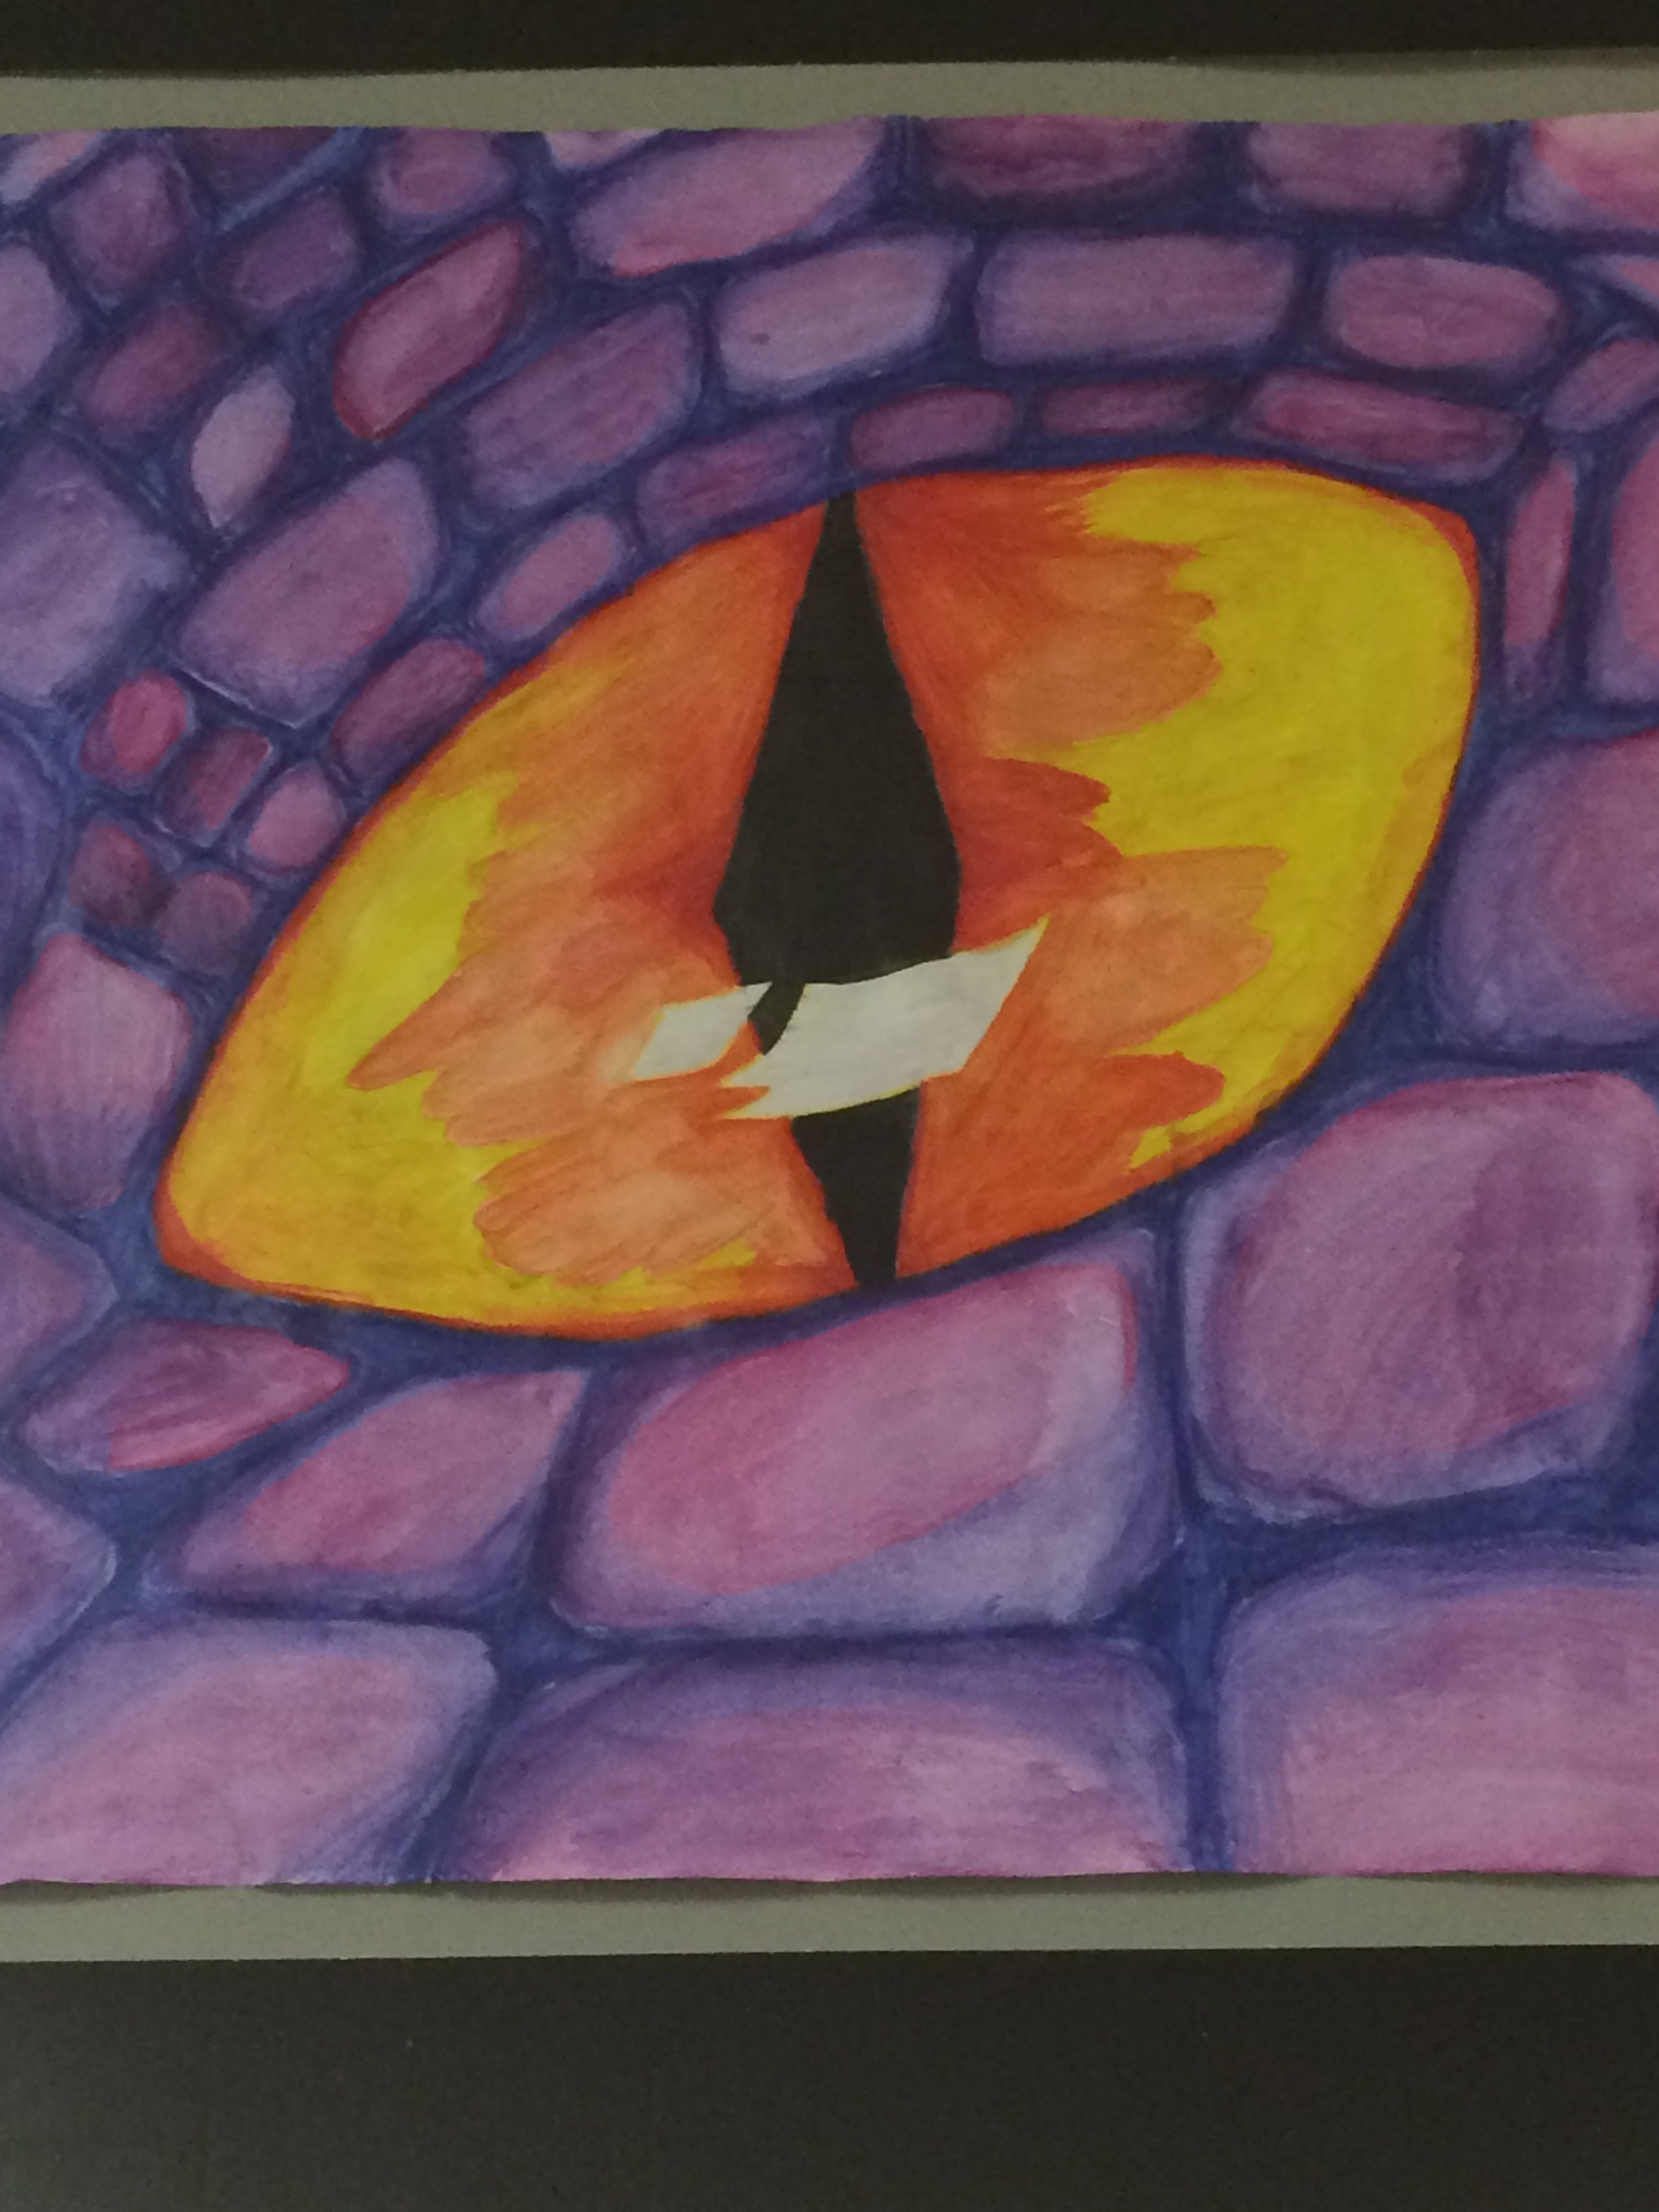 art students sketch work, dragon eye